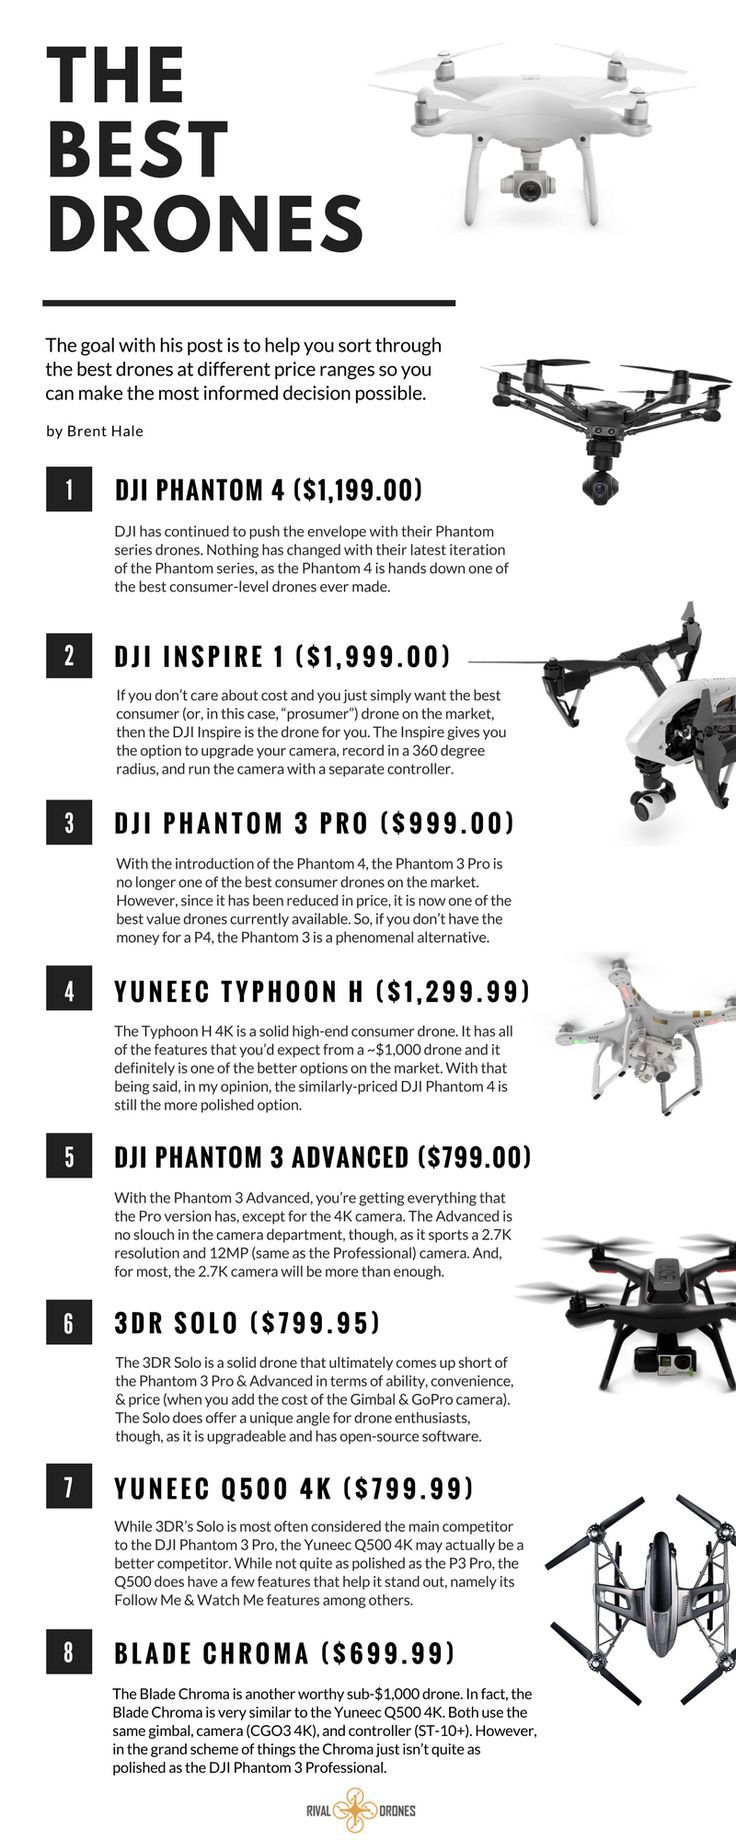 Consumer drones are quickly becoming the most popular new tech-item to have. However, not all drones are made equally. Some drones (or quadcopters) are suited for beginners who need to get the hang of how to fly a drone, while other drones are suited for more advanced users. #infographics #drones